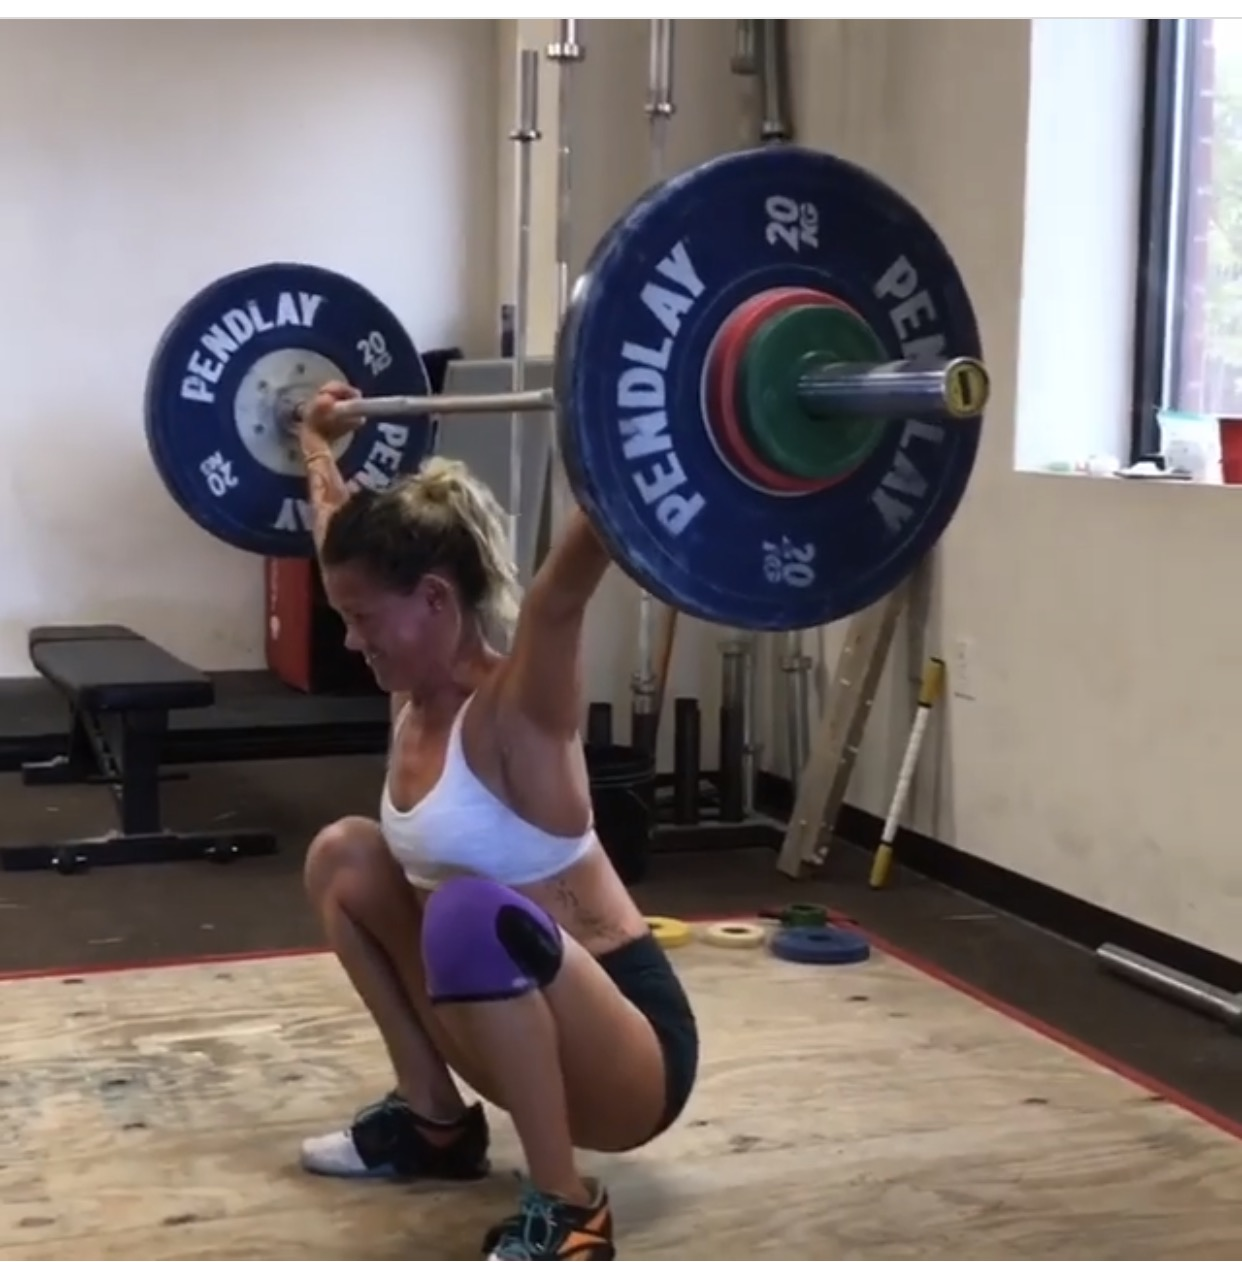 Tiffany B. - Weightlifting - Before 1st AttemptSnatch: 58kgClean and Jerk: 64kgBack Squat: 86kgFront Squat: 64kgWith 1st Attempt:Snatch: 62kgClean and Jerk: 70kgBack Squat: 95kgFront Squat: 70kg